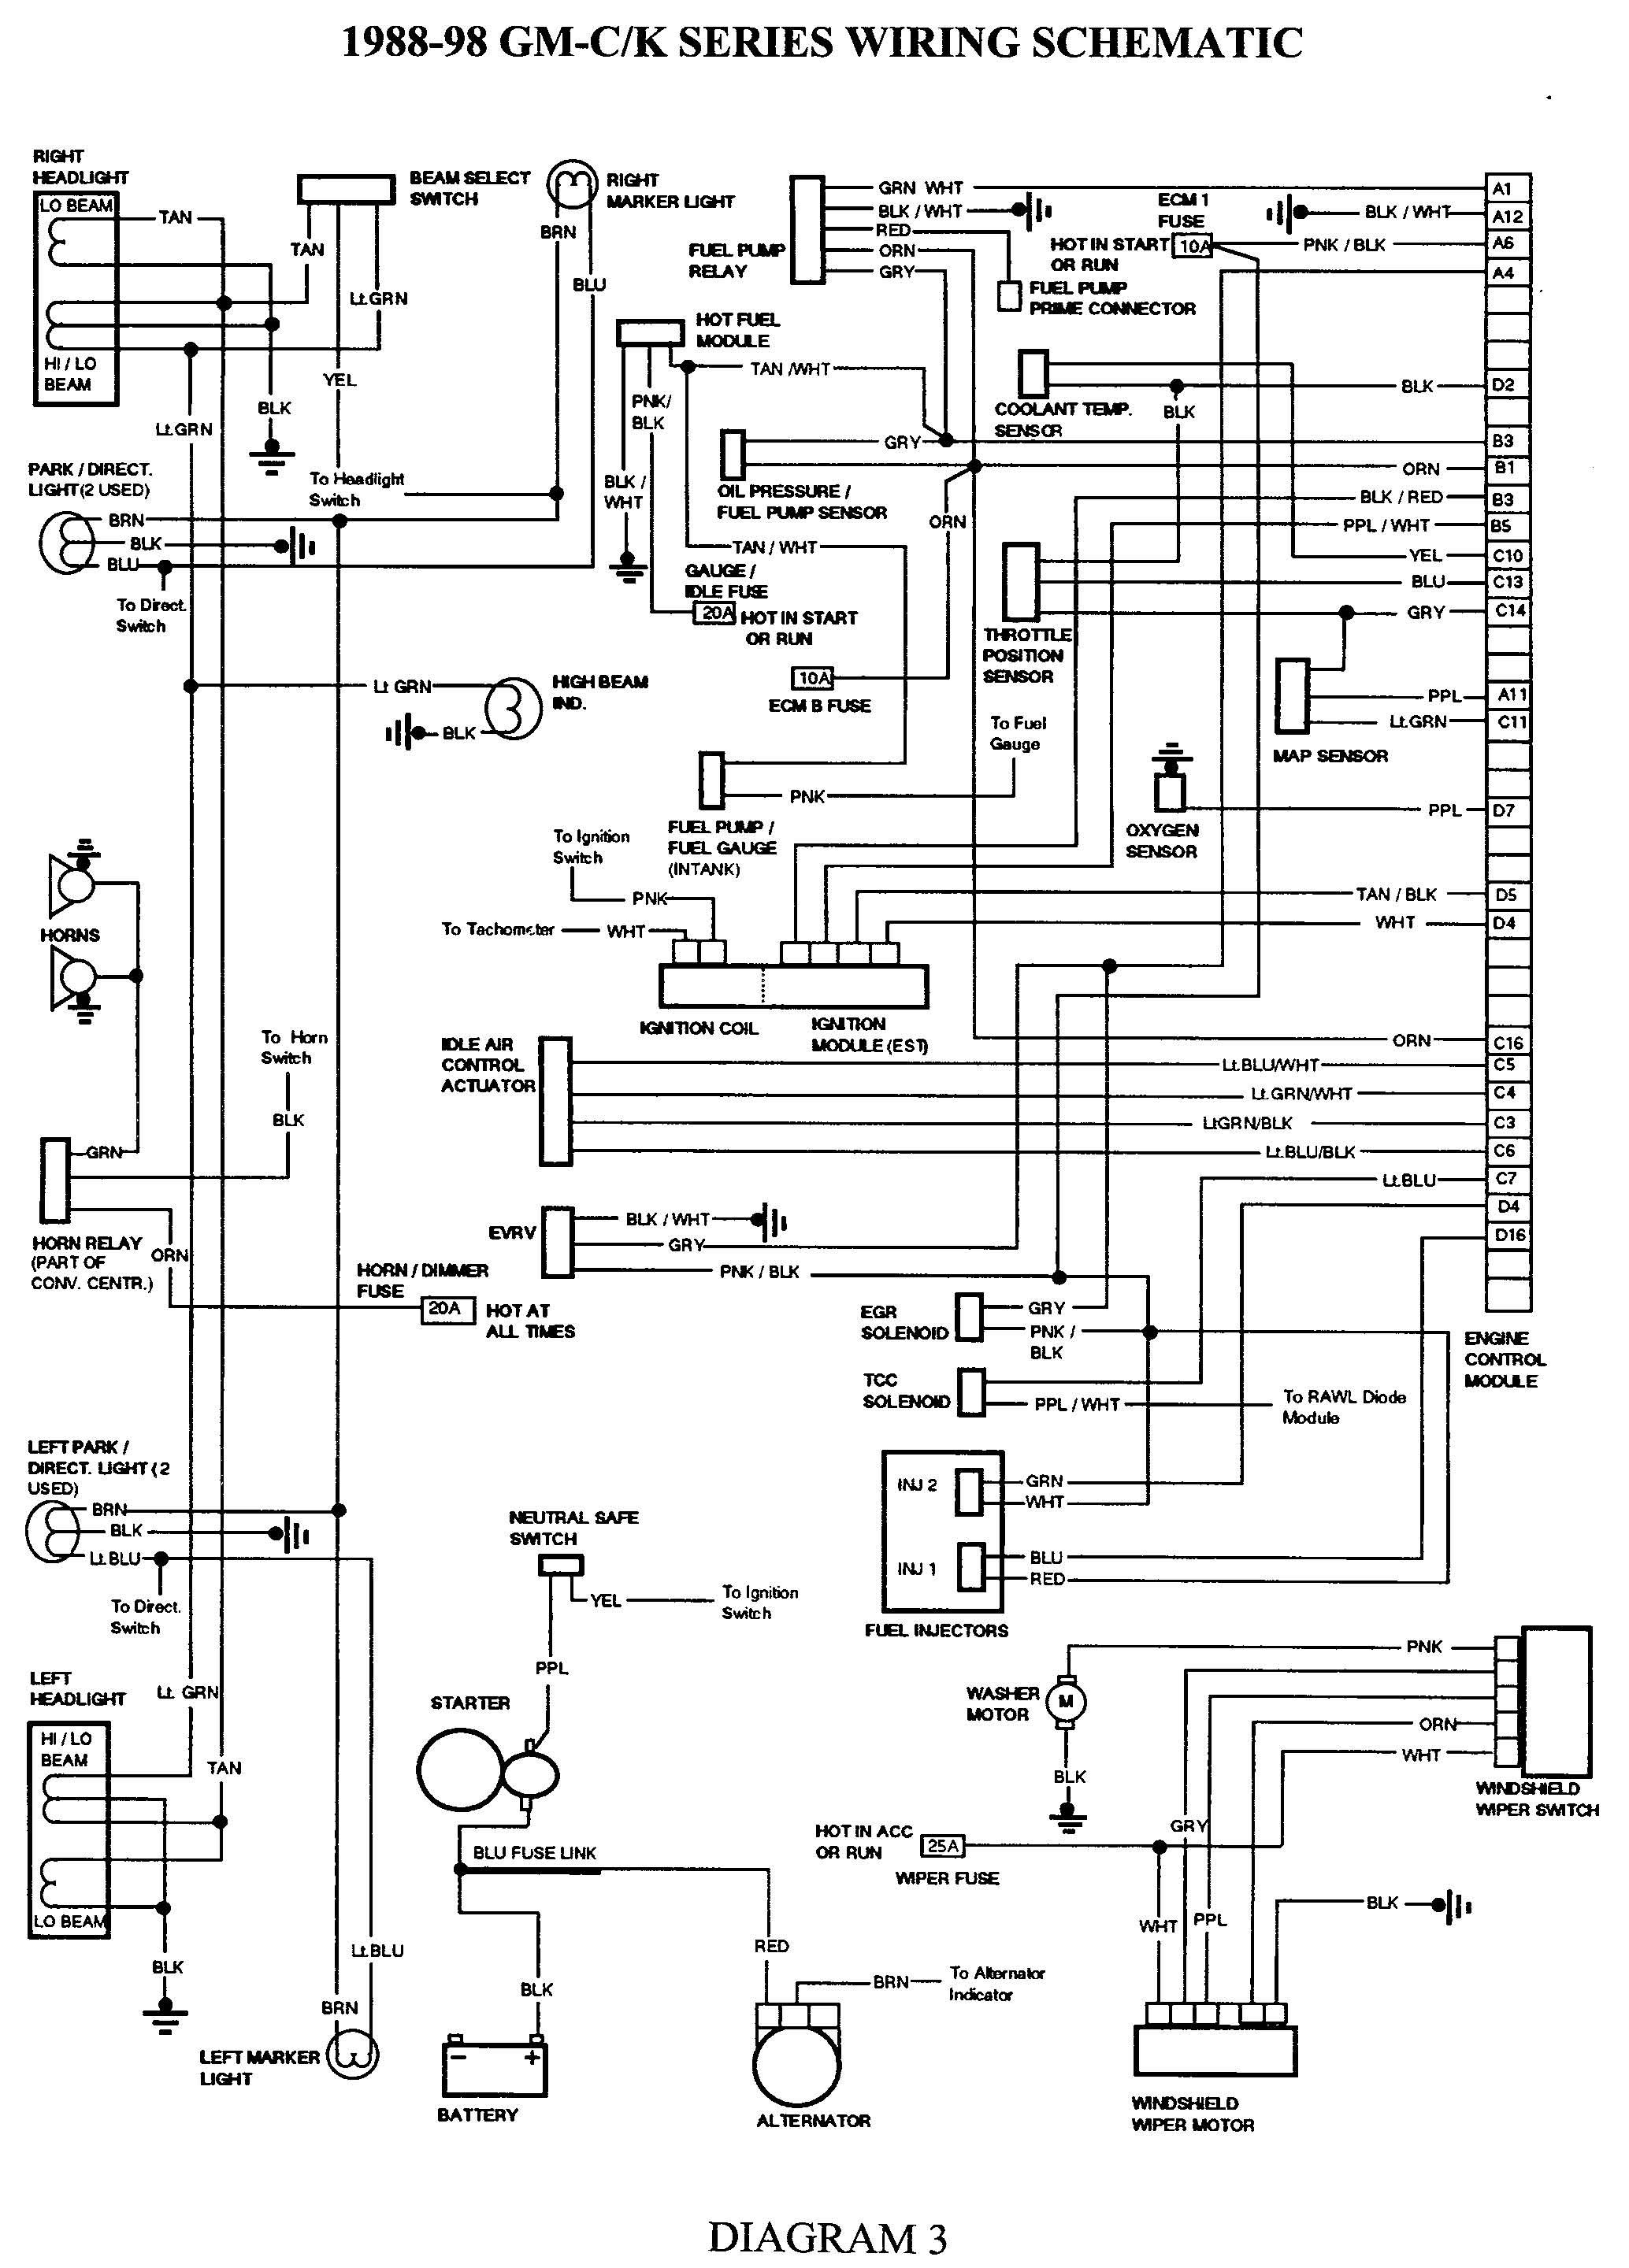 medium resolution of 1990 gmc k1500 wiring diagram wiring diagram name 1990 gmc truck wiring diagram 1990 gmc truck wiring